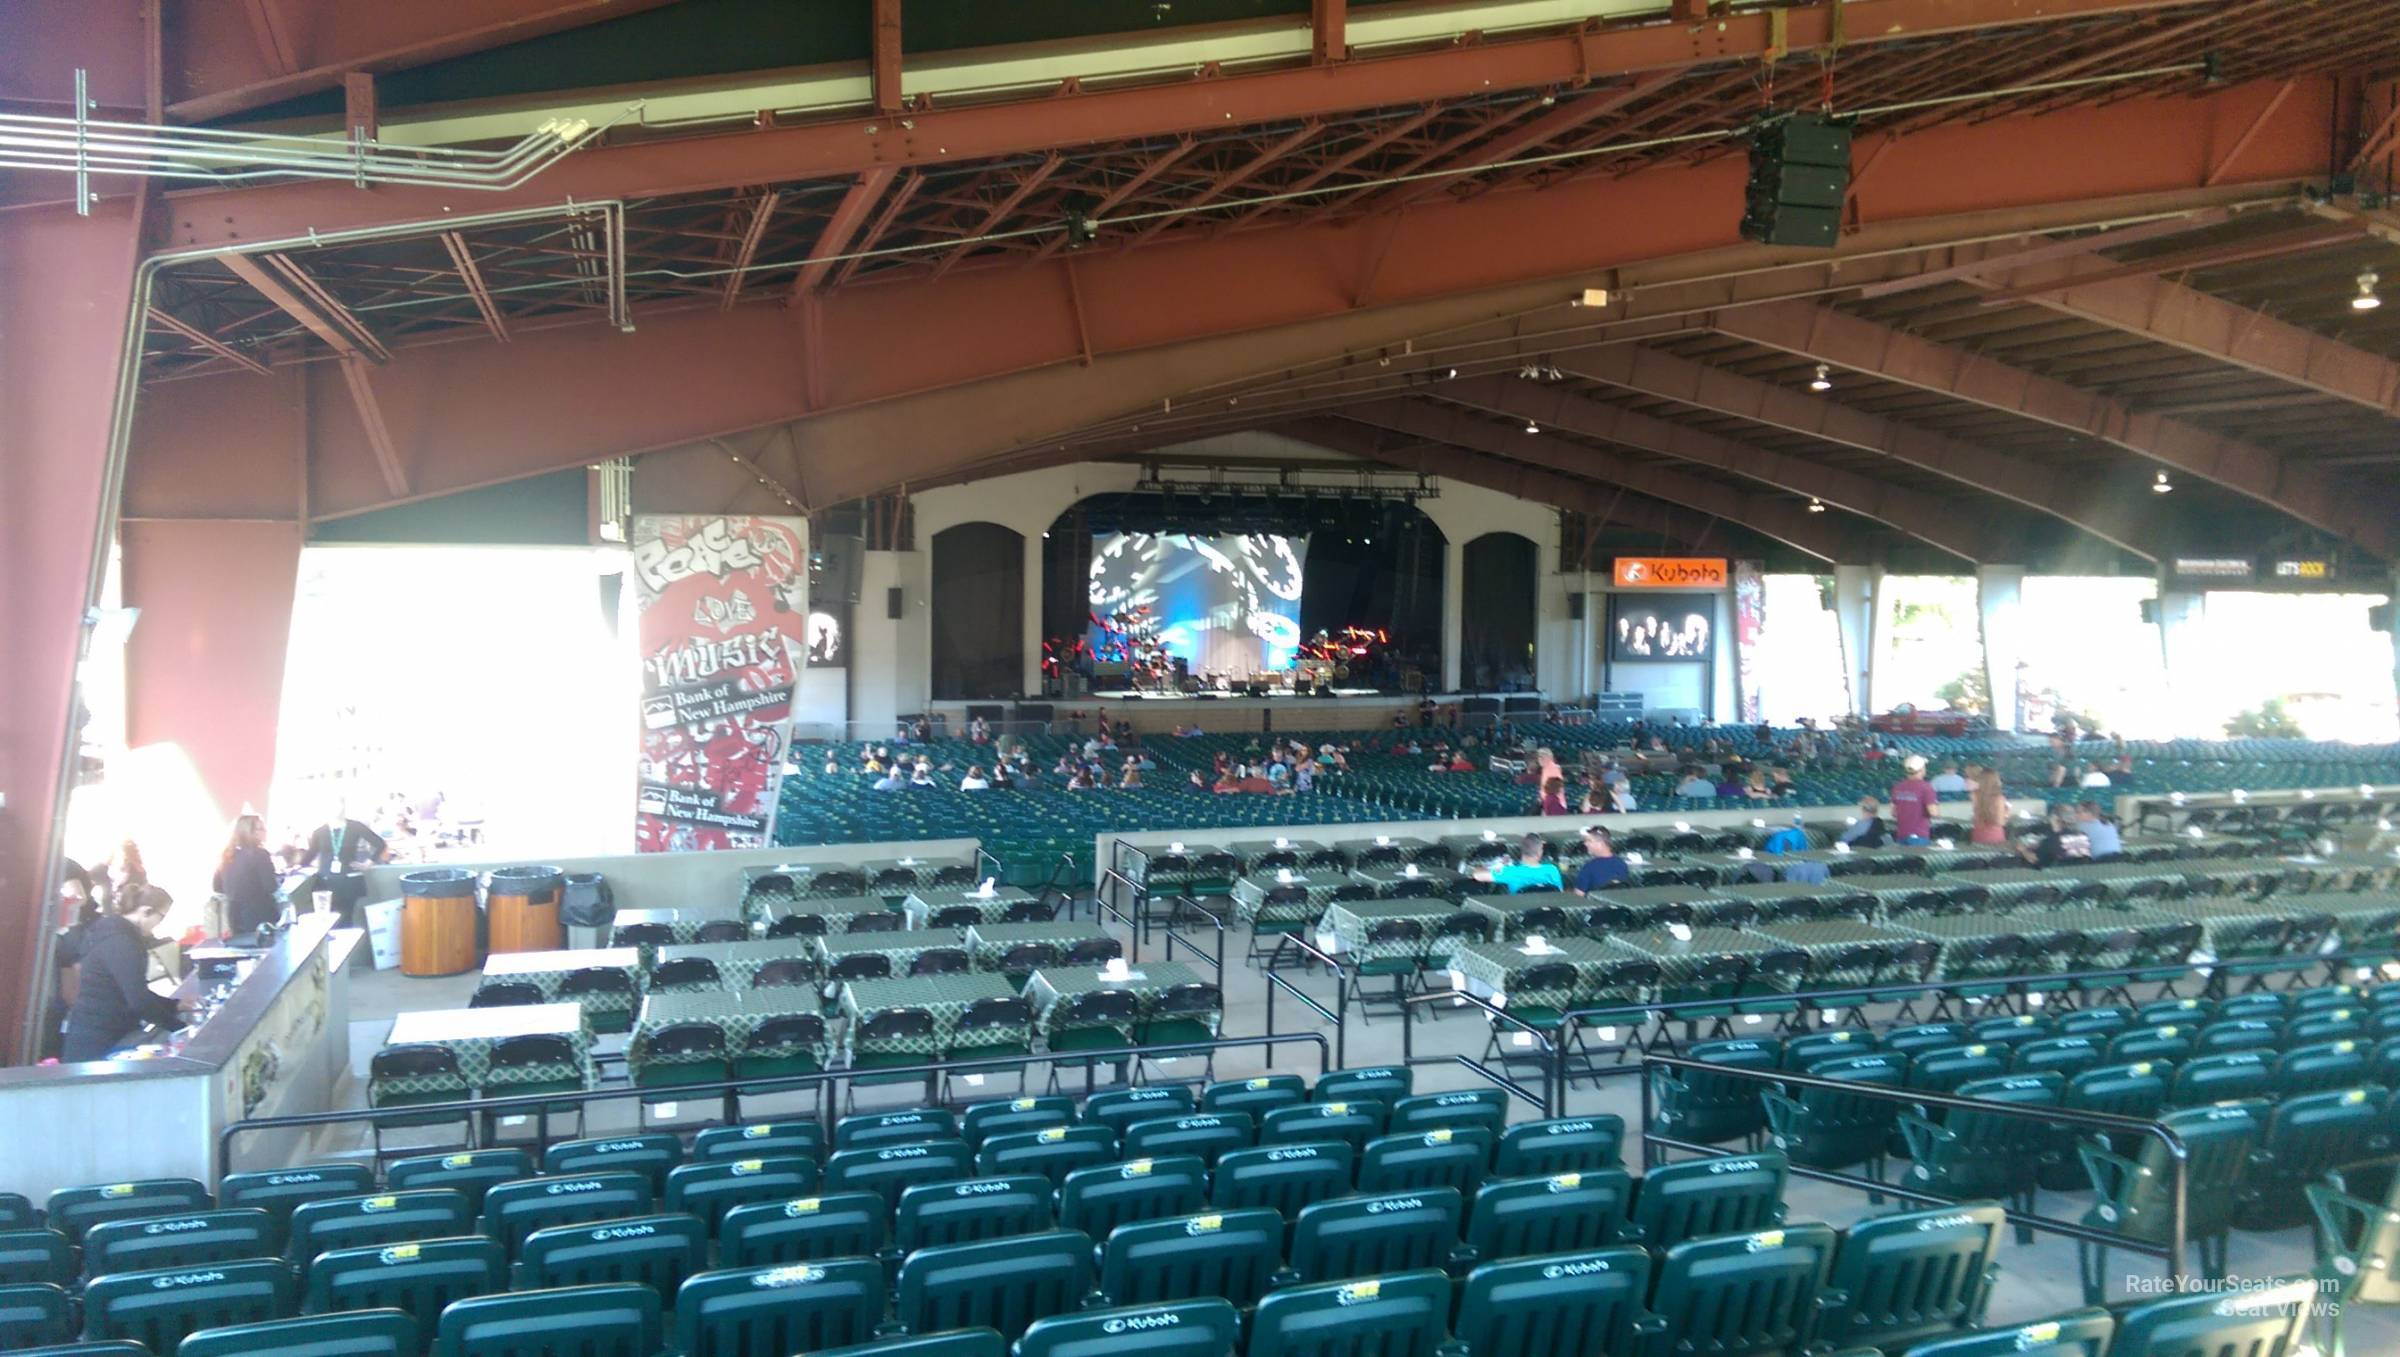 Concert Seat View For Bank Of New Hampshire Pavilion Meadowbrook Section 3a